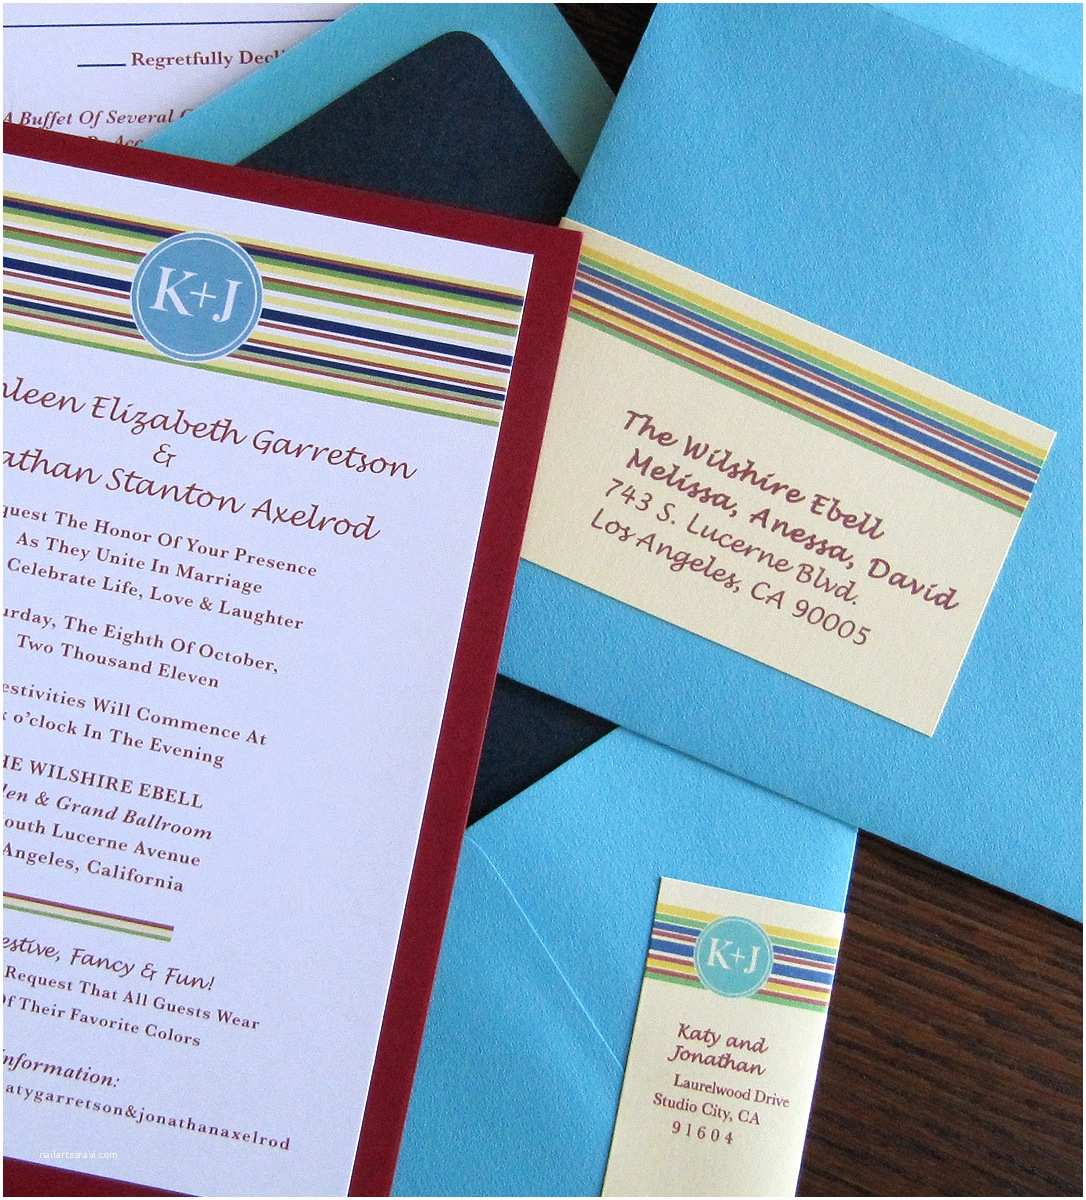 Guest Address Labels for Wedding Invitations Wedding Invitation Guest Address Labels Yaseen for